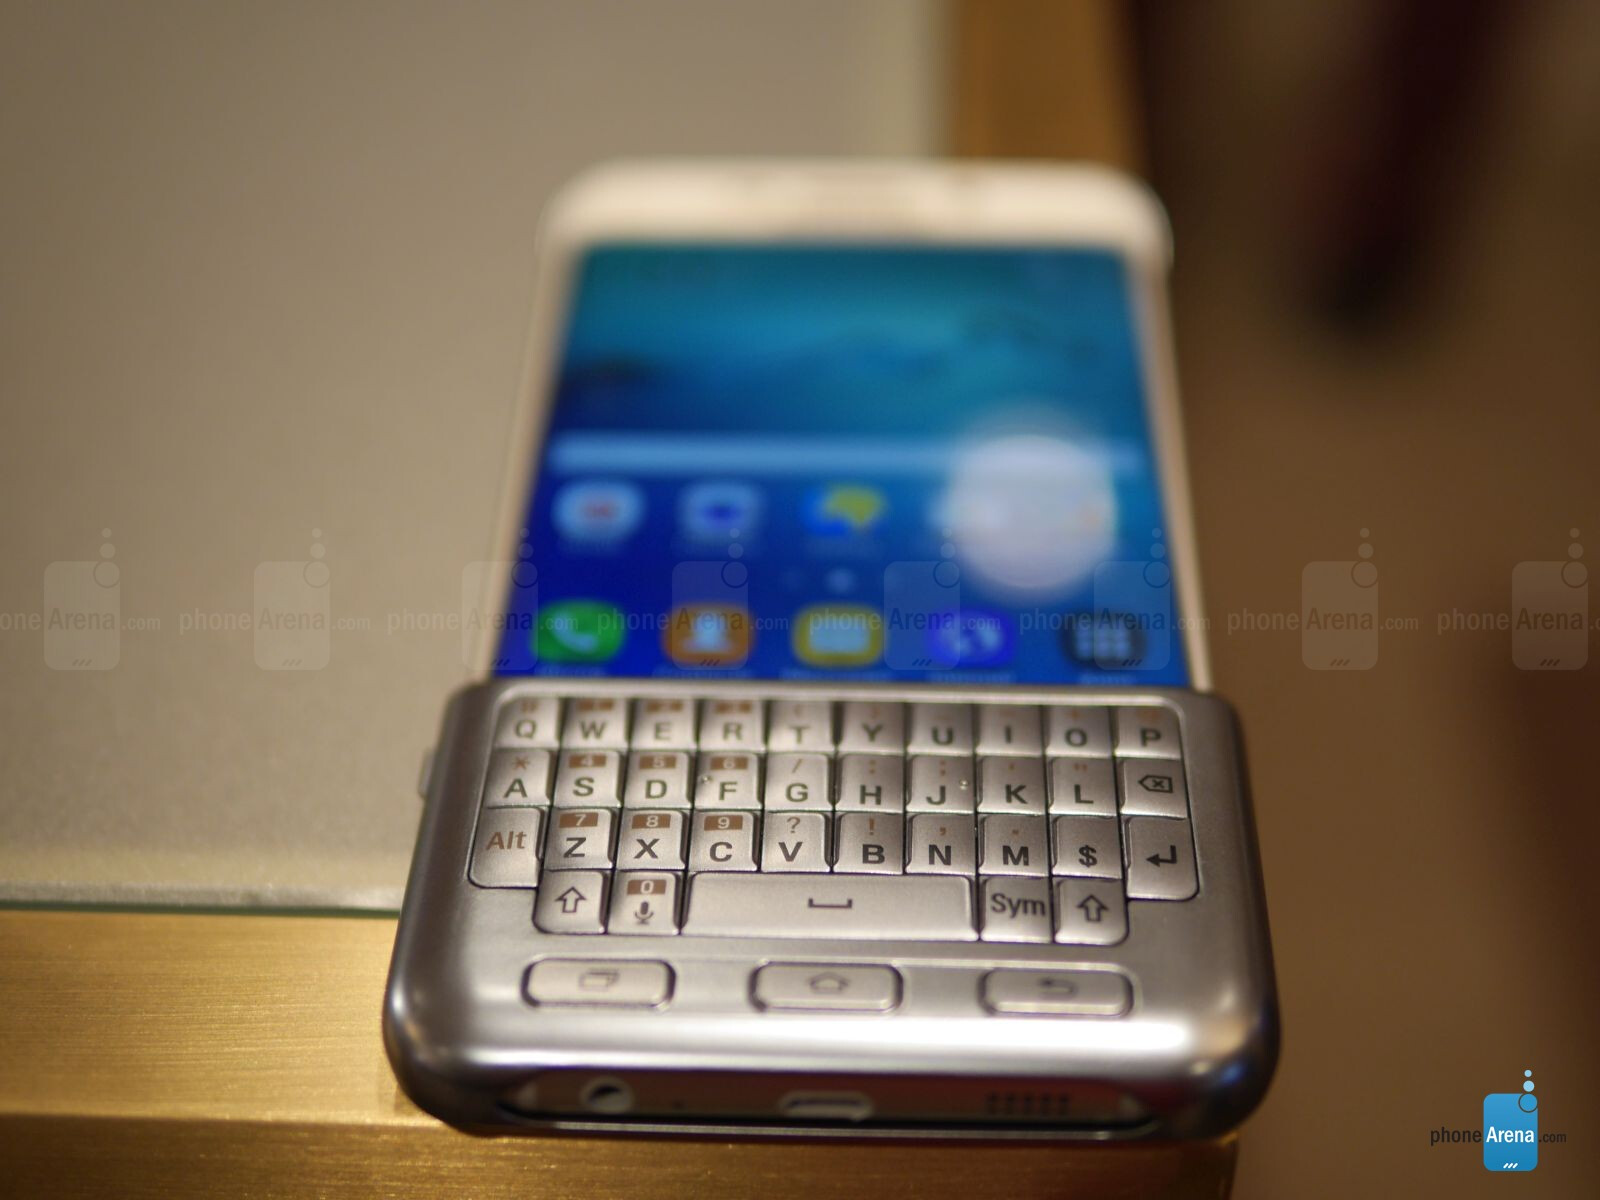 ... Galaxy S7 and S7 edge accessories to include QWERTY Keyboard Covers